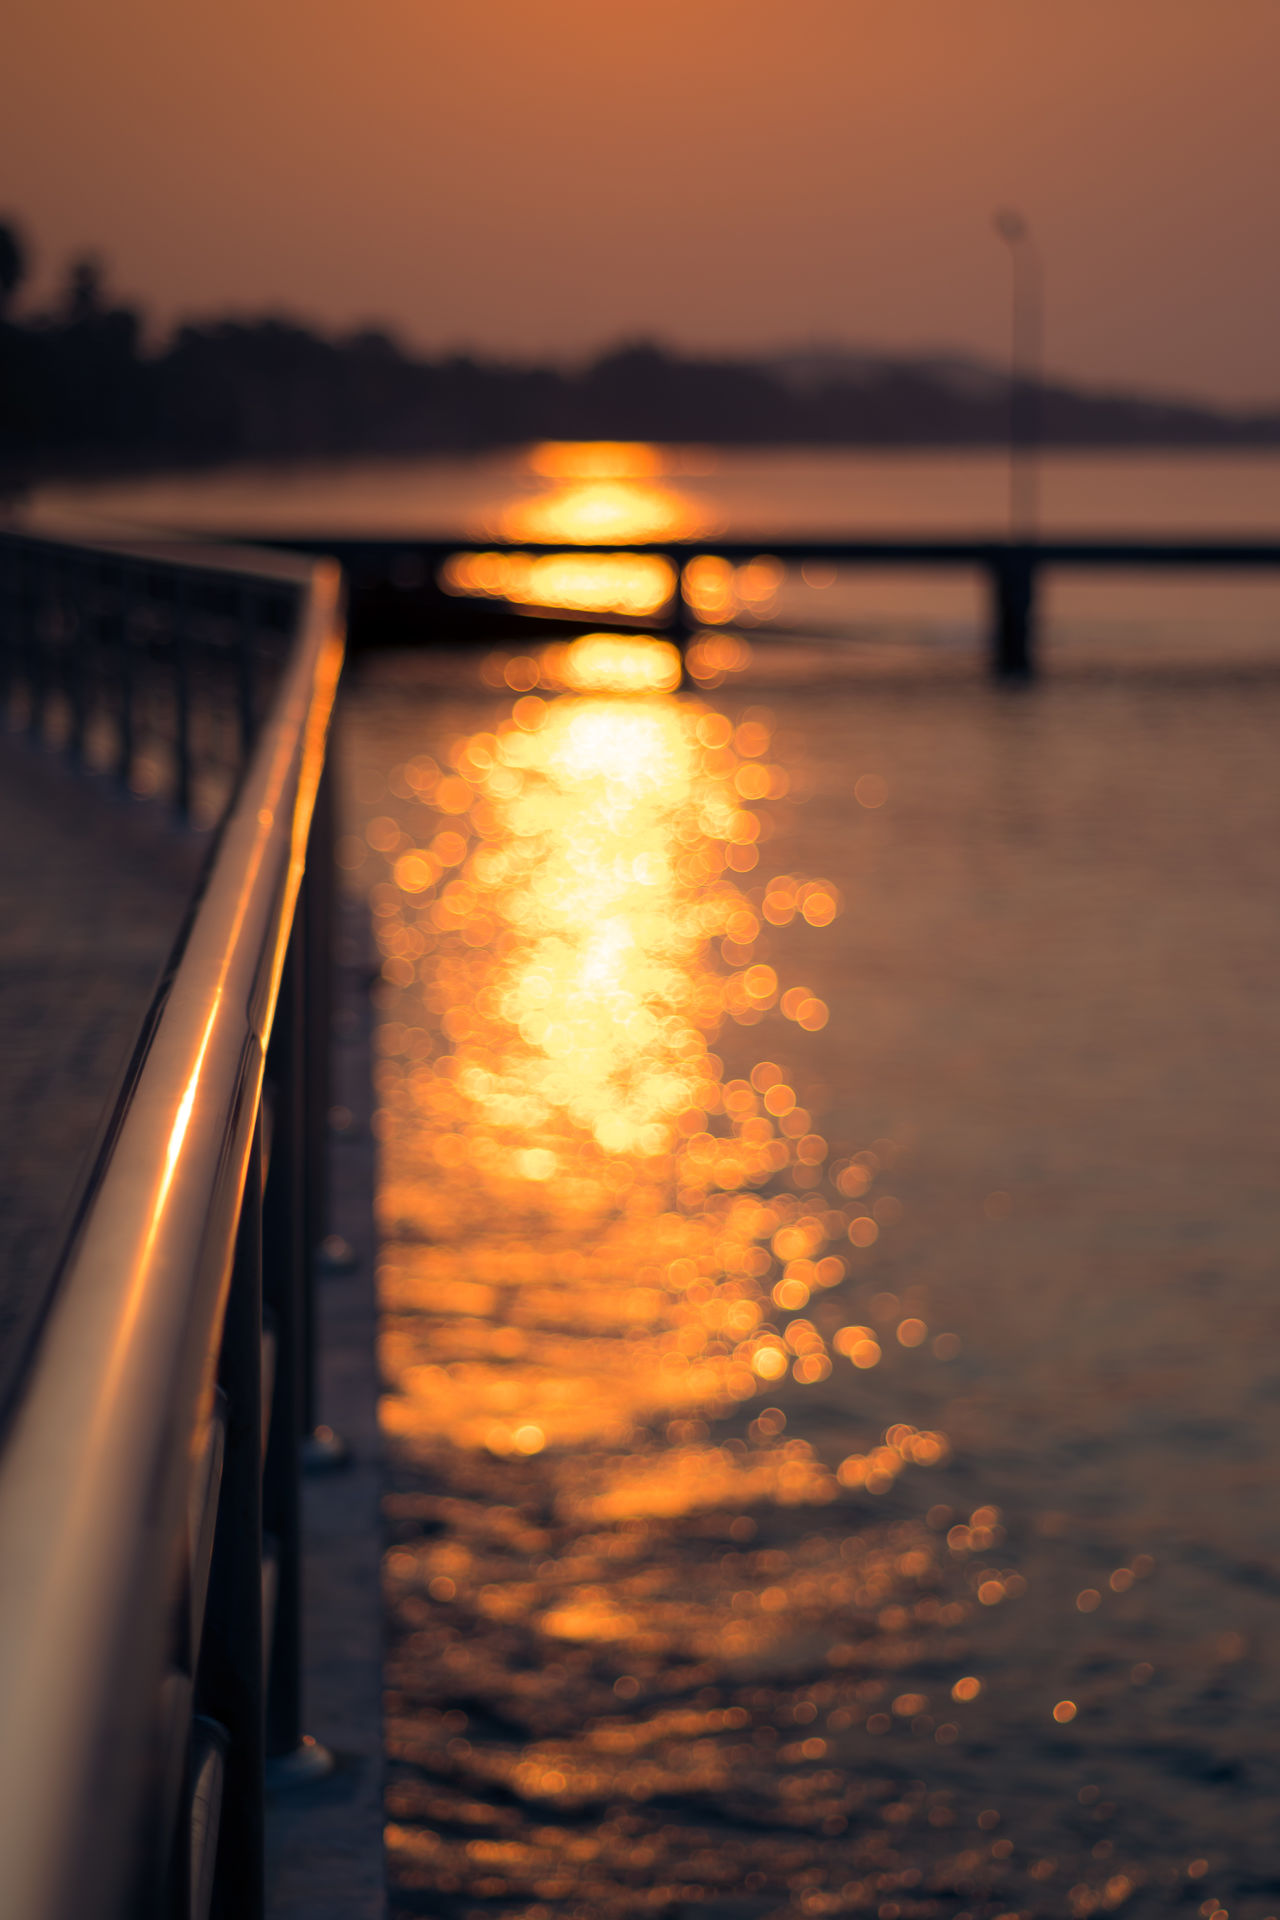 Soft glow of the sun reflecting on water with circular bokeh. Background Blur Bokeh Bridge Calm Circular Concept Glowing No People Orange Outdoors Railing Reflection Seascape Sky Summer Sun Sunrise Sunset Thailand Tranquil Scene Tranquility Travel Destinations Vacation Water